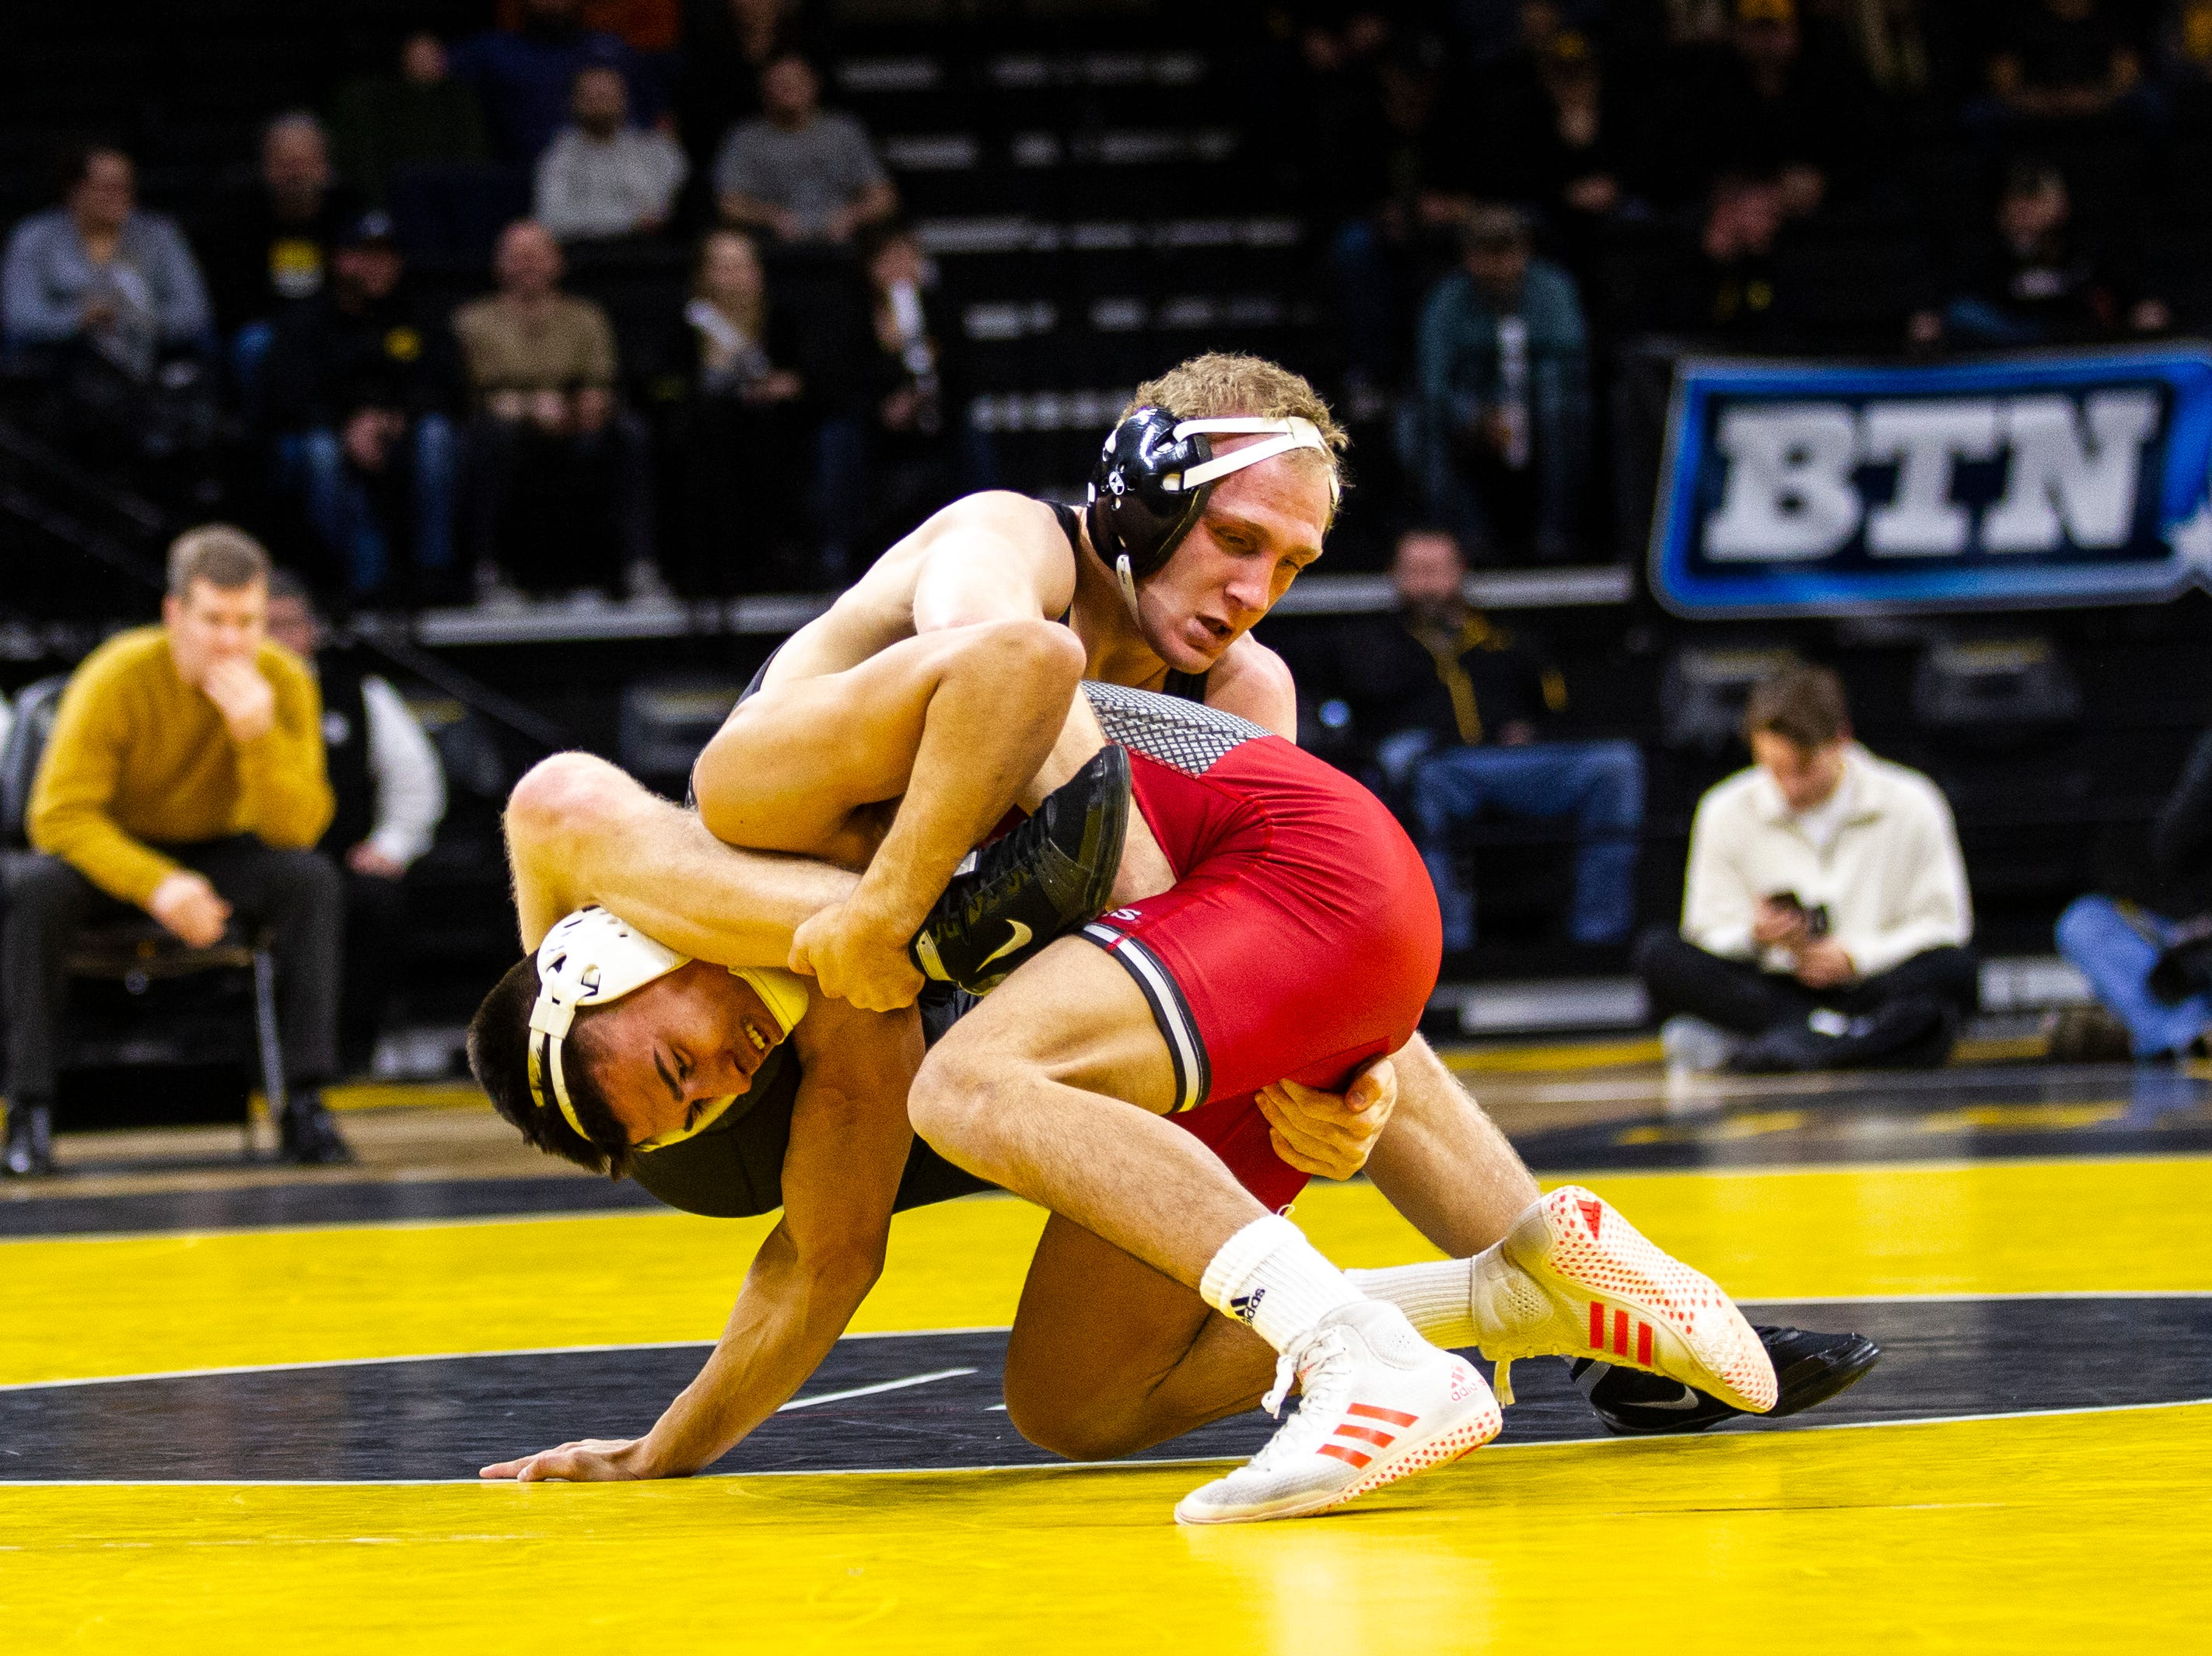 Iowa's Kaleb Young, top, wrestles Rutgers' John Van Brill at 157 during a NCAA Big Ten Conference wrestling dual on Friday, Jan. 18, 2019, at Carver-Hawkeye Arena in Iowa City, Iowa.